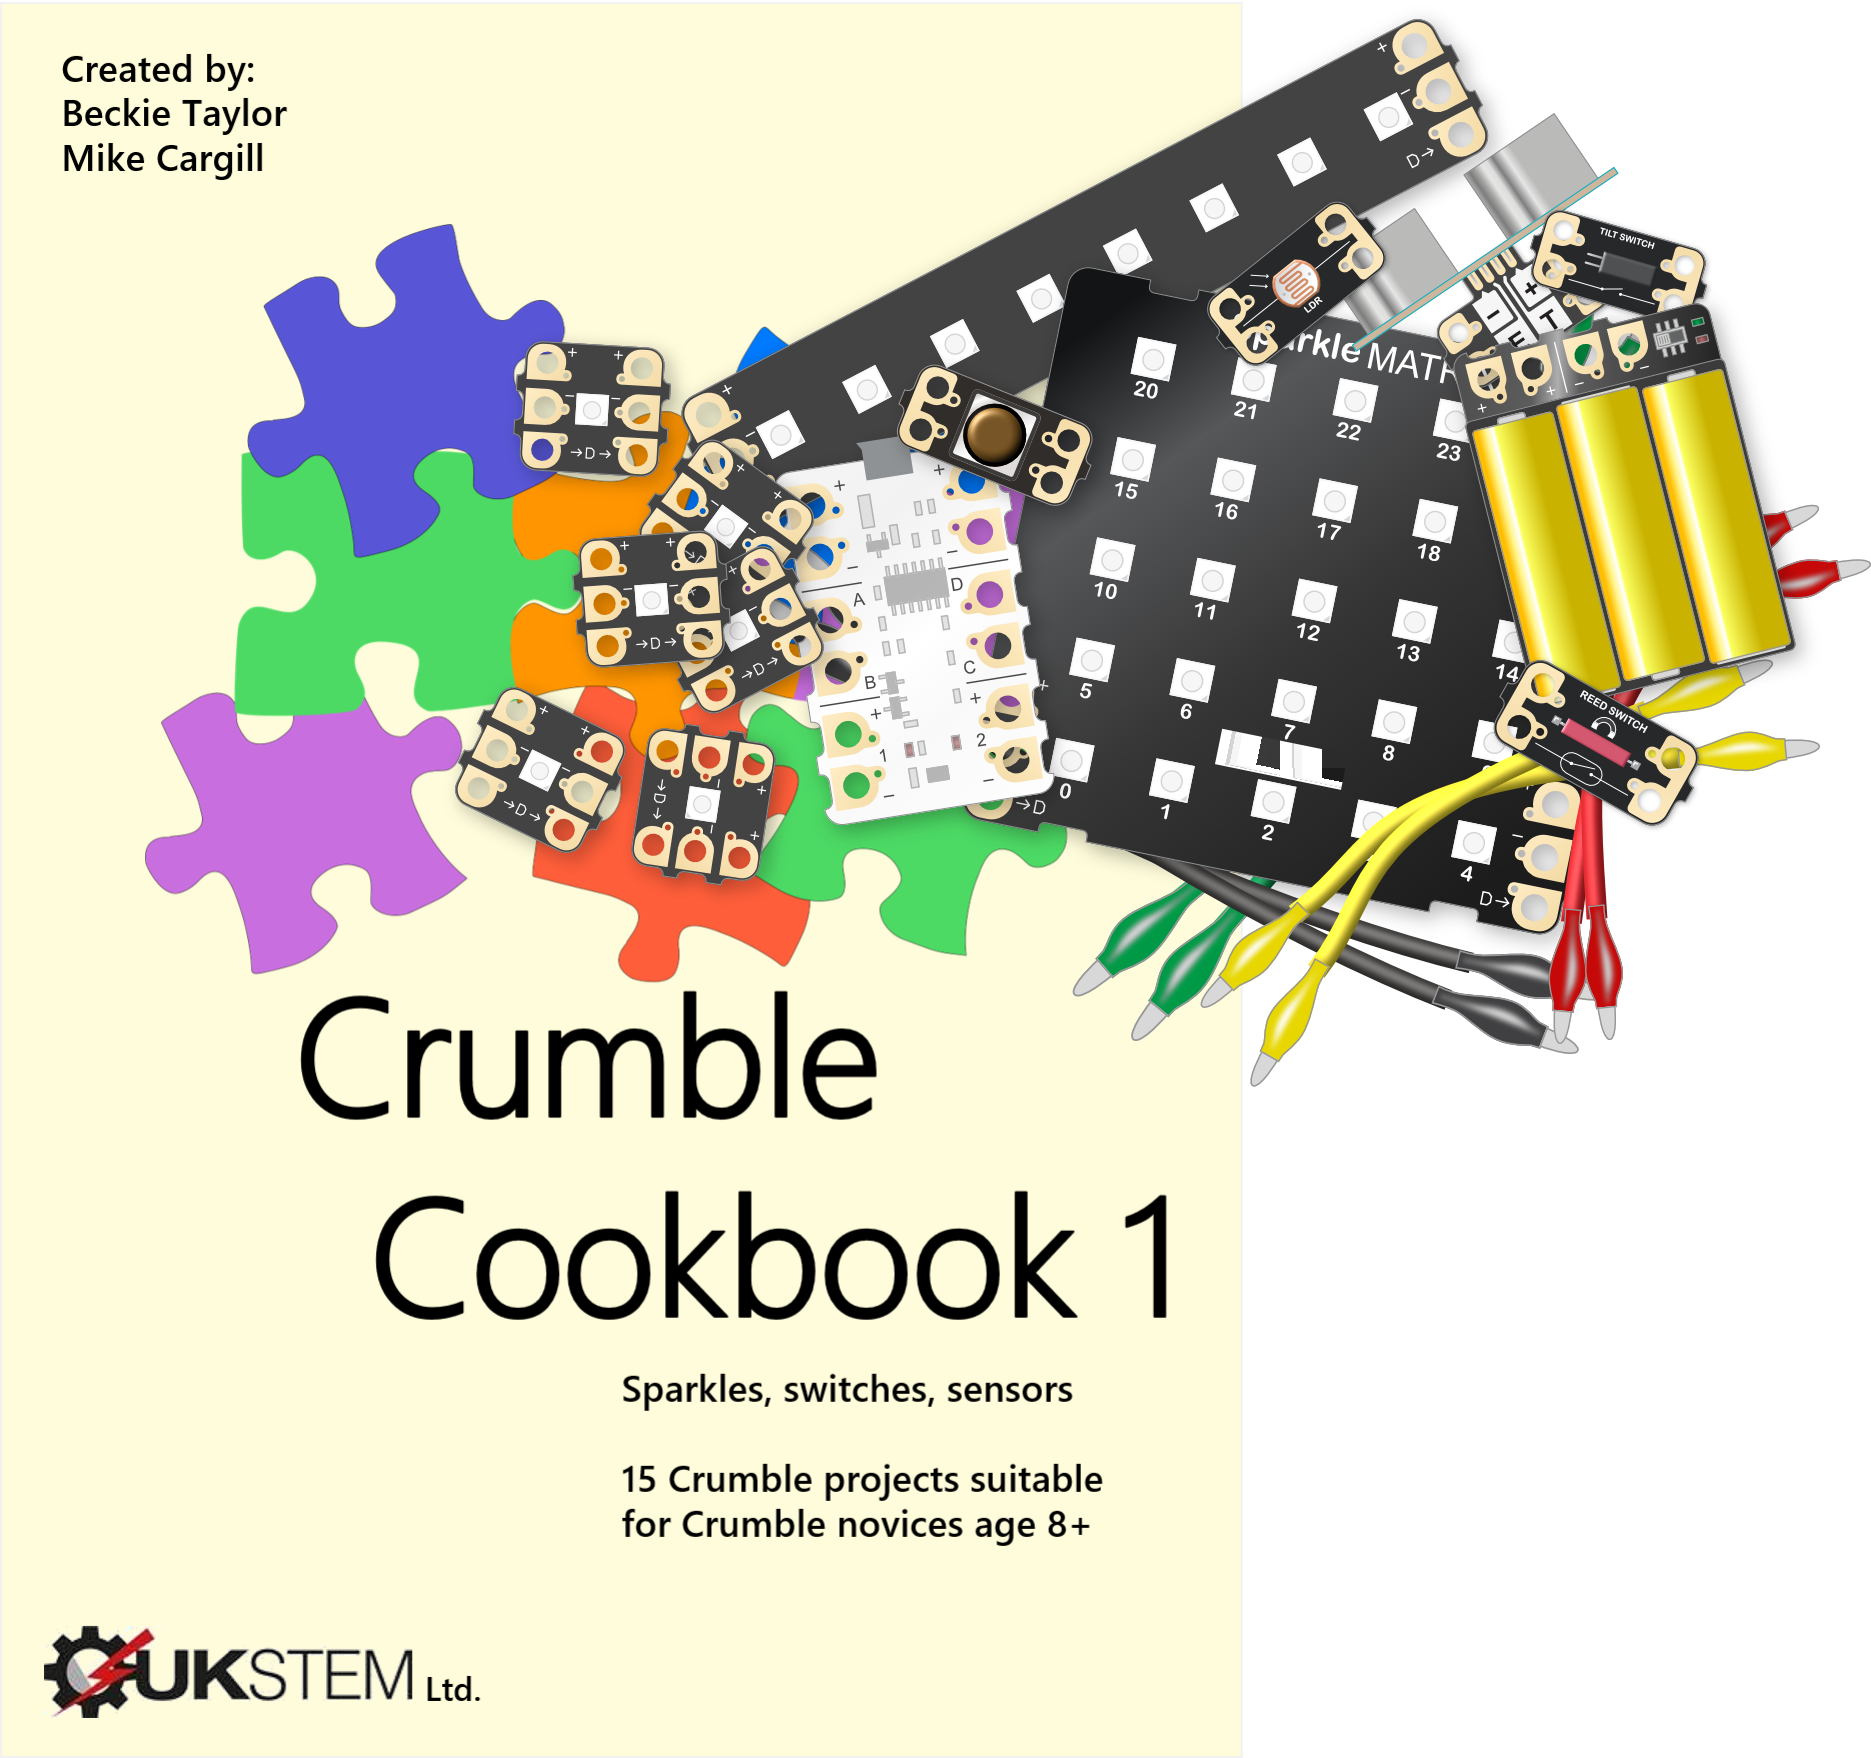 Crumble Cookbook